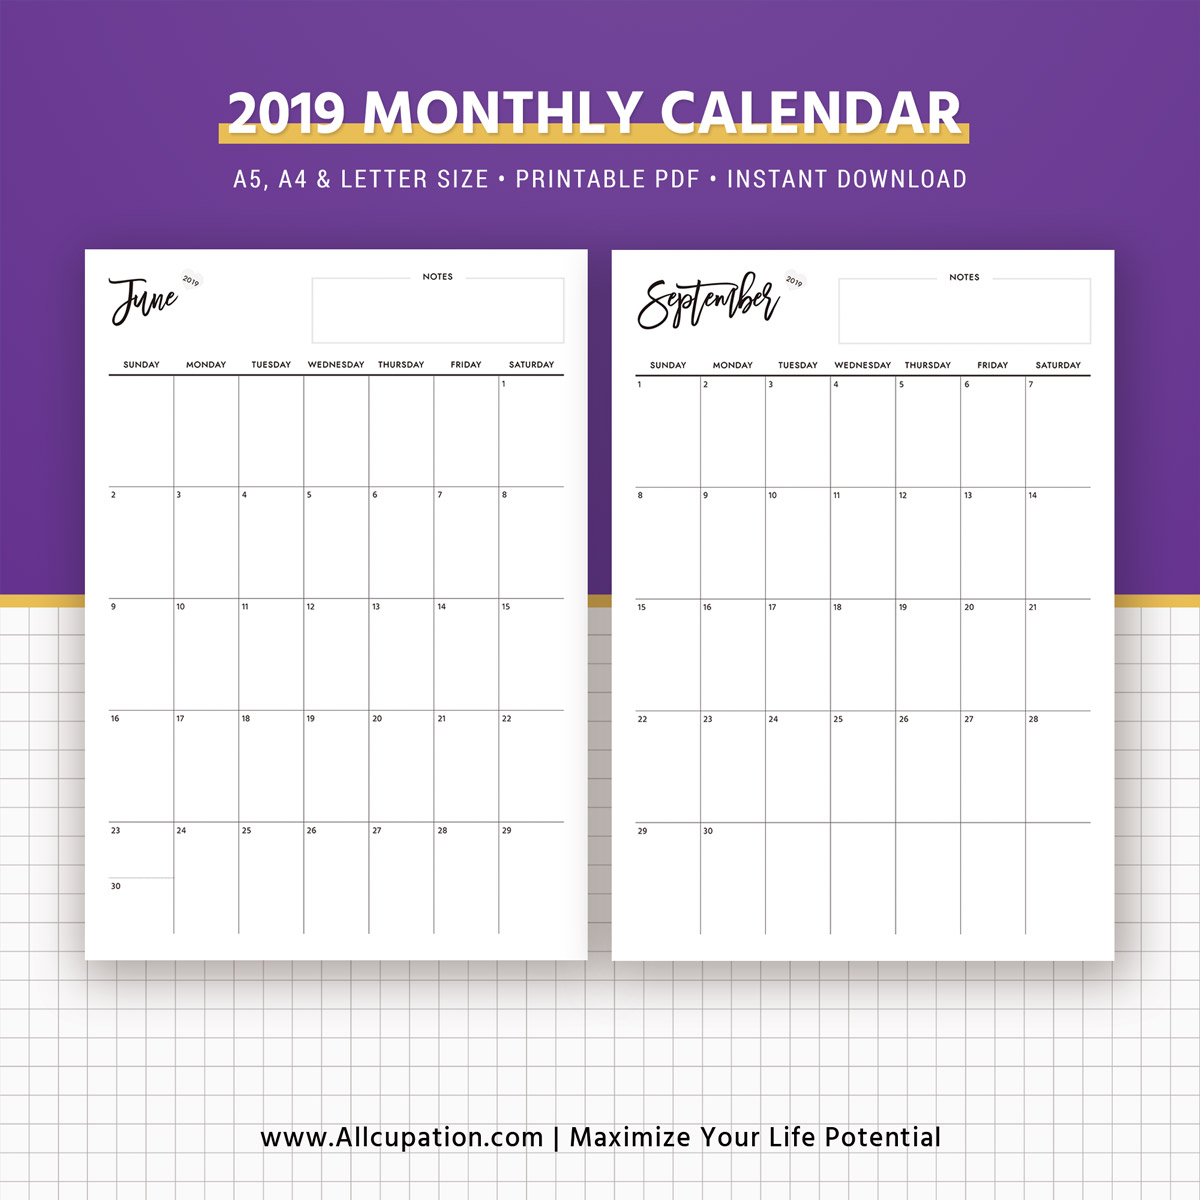 Best Printable Calendar: 2019 Monthly Calendar, Calendar 2019, Planner Design, Best